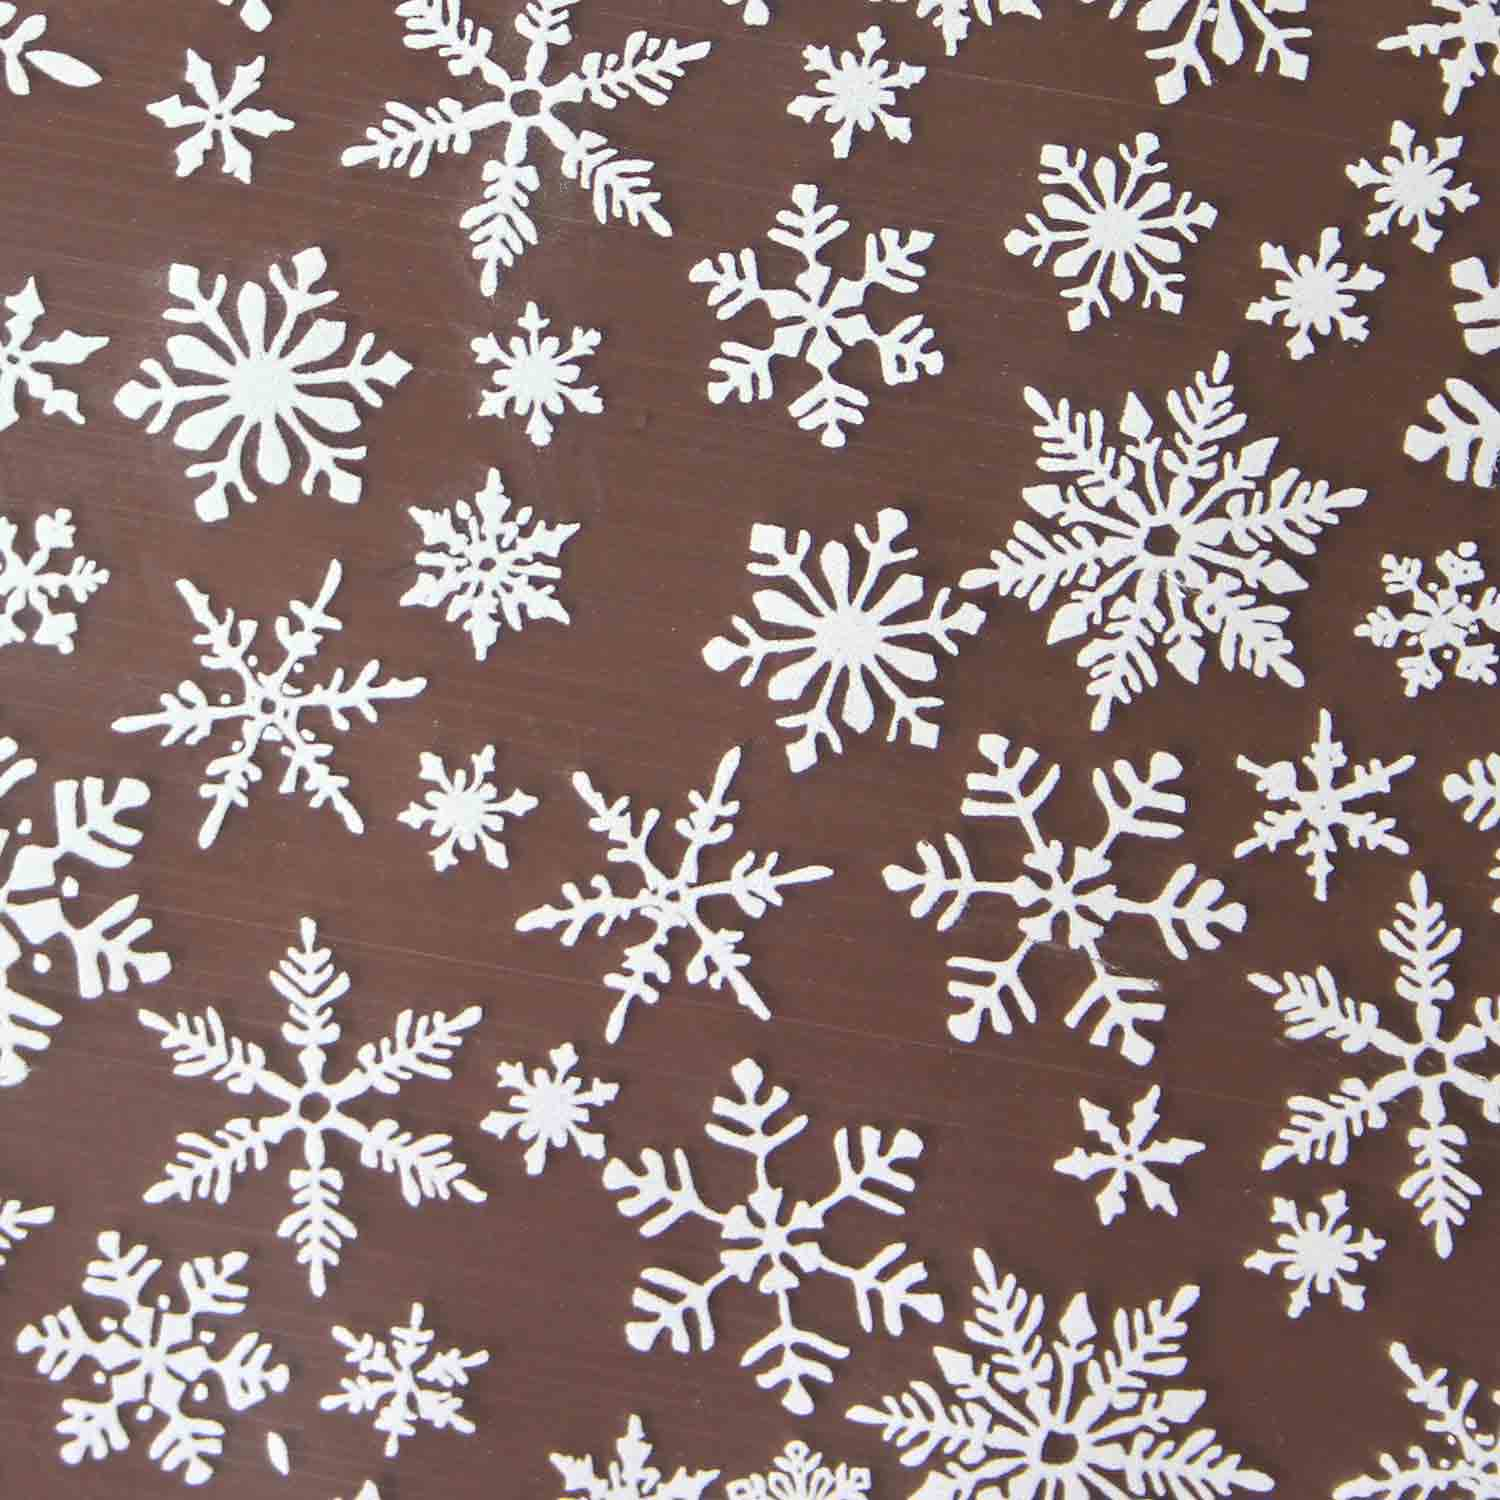 Chocolate Transfer Sheet - Snowflake